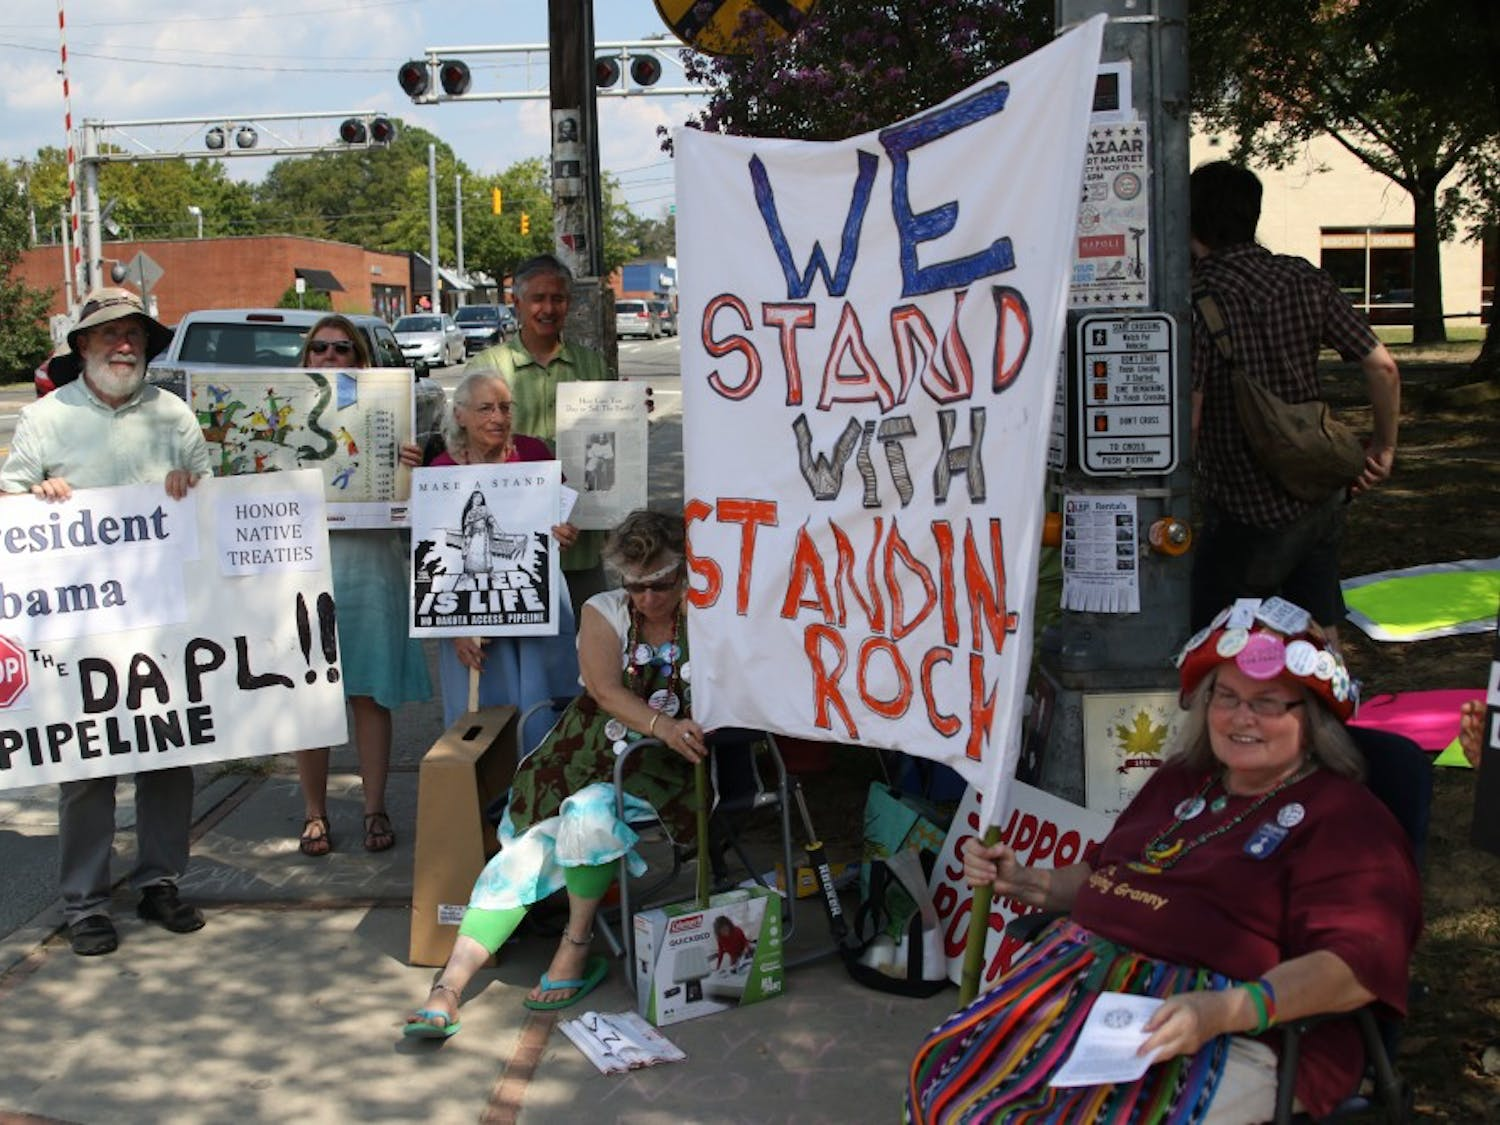 Protestors gathered in Carrboro to protest the construction of the Dakota pipeline that is disrupting ancient Native American burial grounds.